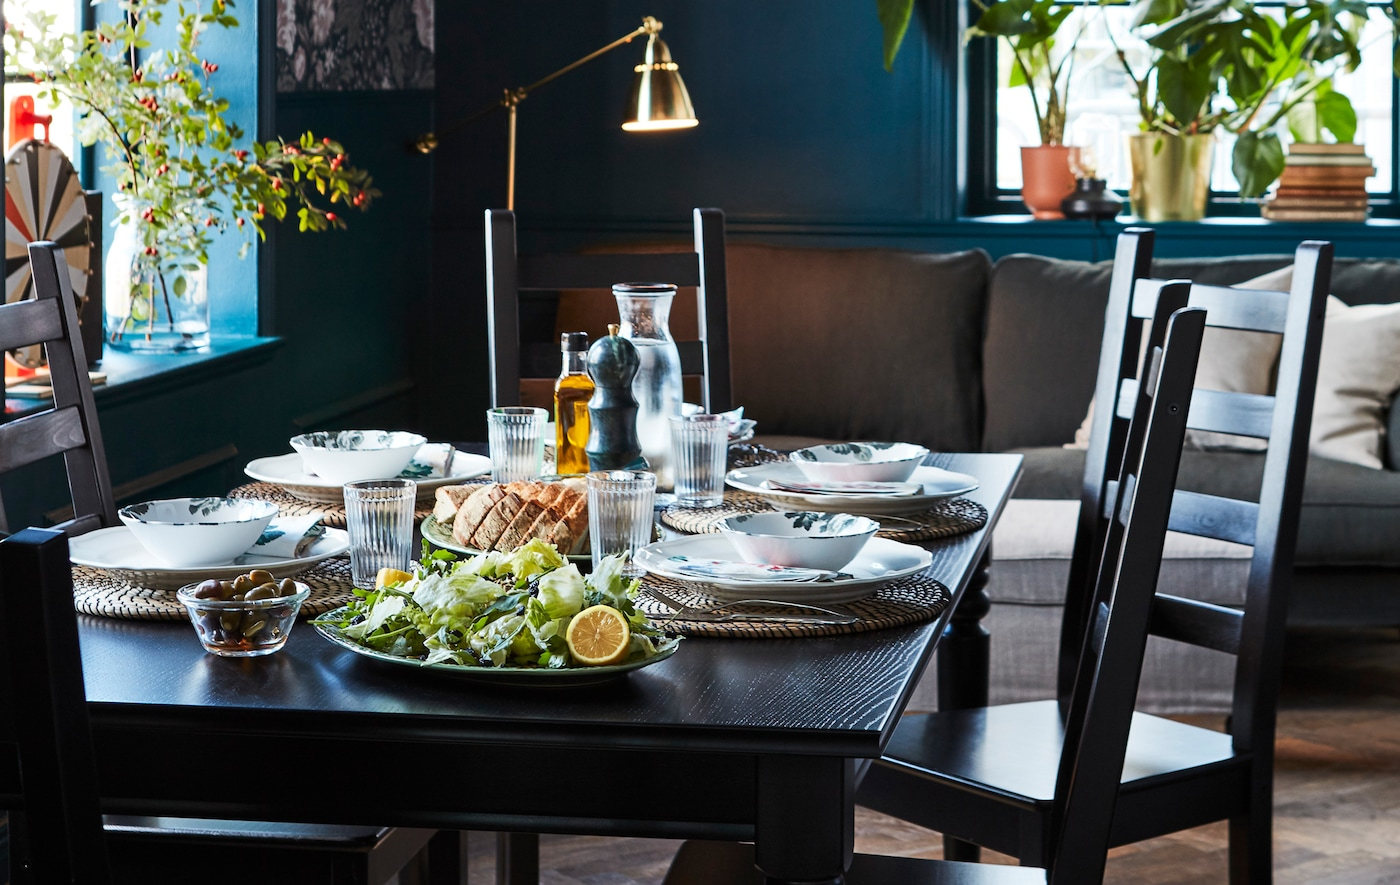 Reclaiming family dinners becomes easier with a welcoming, extendable table with room for friends as well.